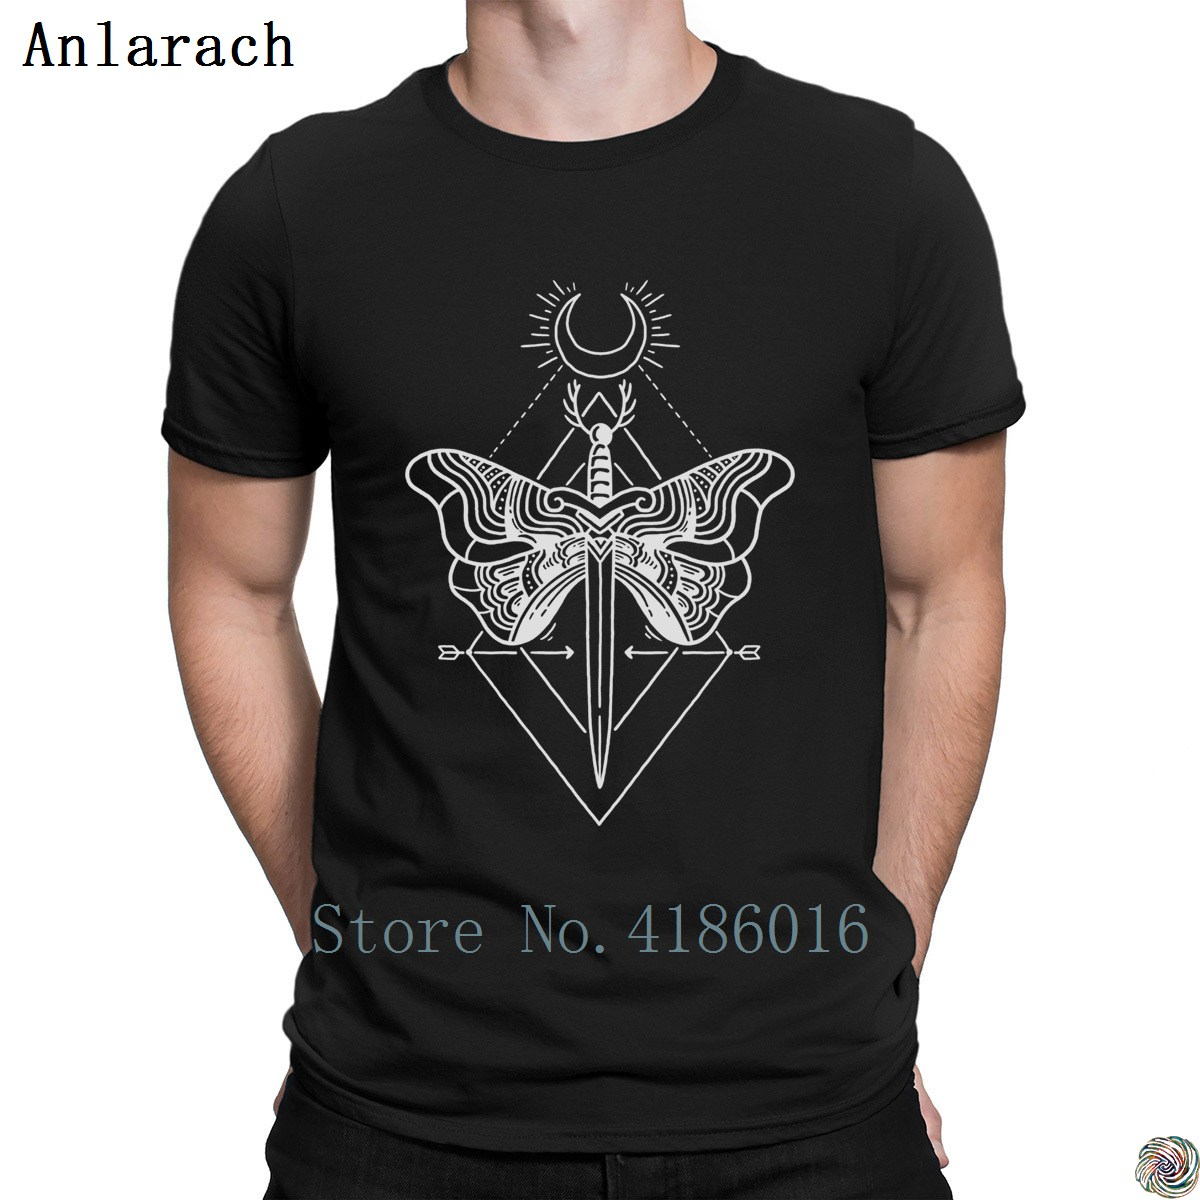 Sword Moth t-shirt nice clothing HipHop Top 2018 t shirt for men printed Pictures slim fit Anlarach big sizes